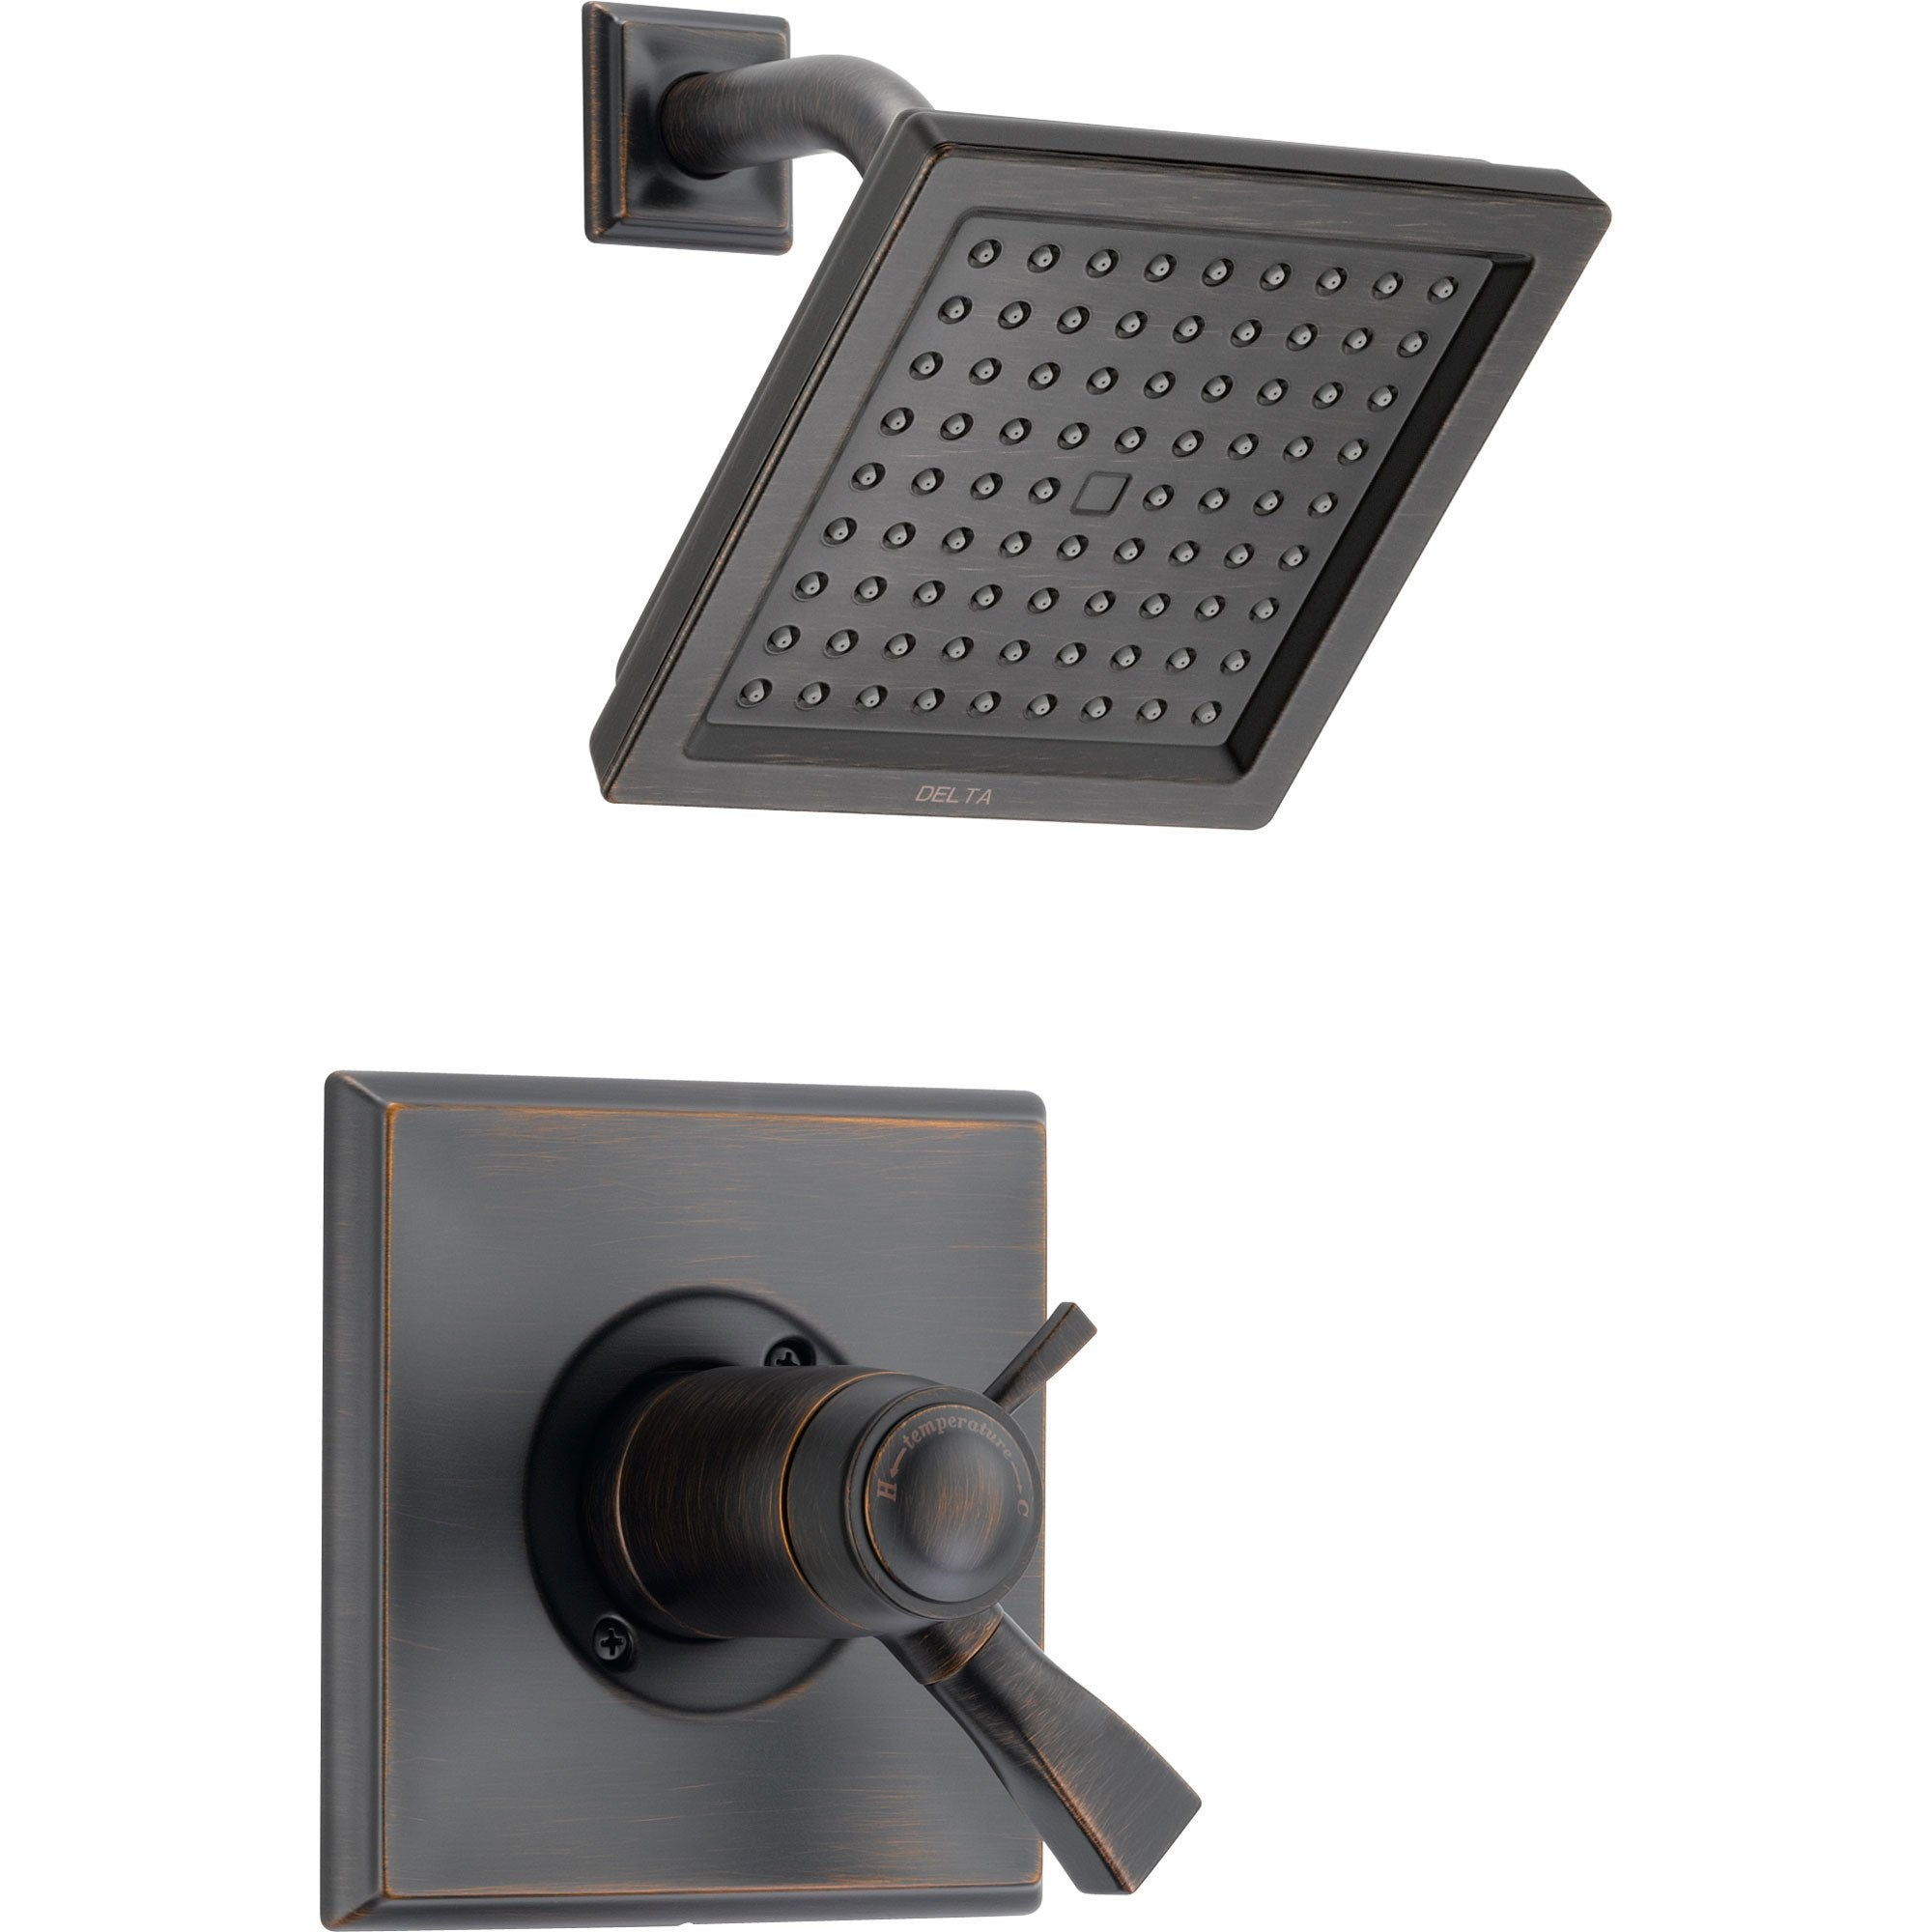 Delta Dryden Venetian Bronze Modern Thermostatic Shower Control with Valve D804V